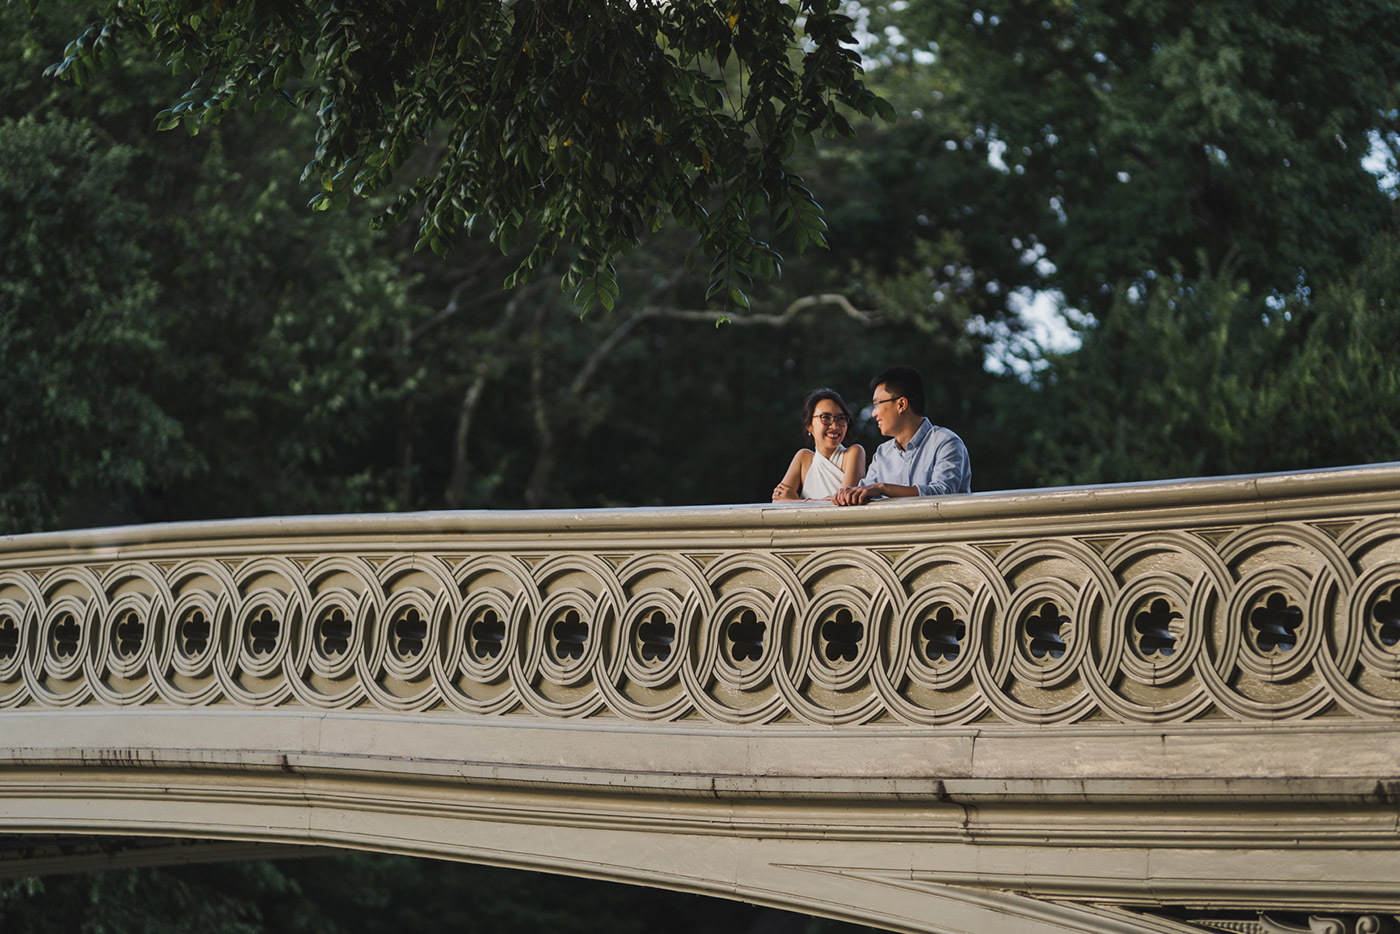 Newly engaged couple at Bow Bridge in Central Park, right after their proposal